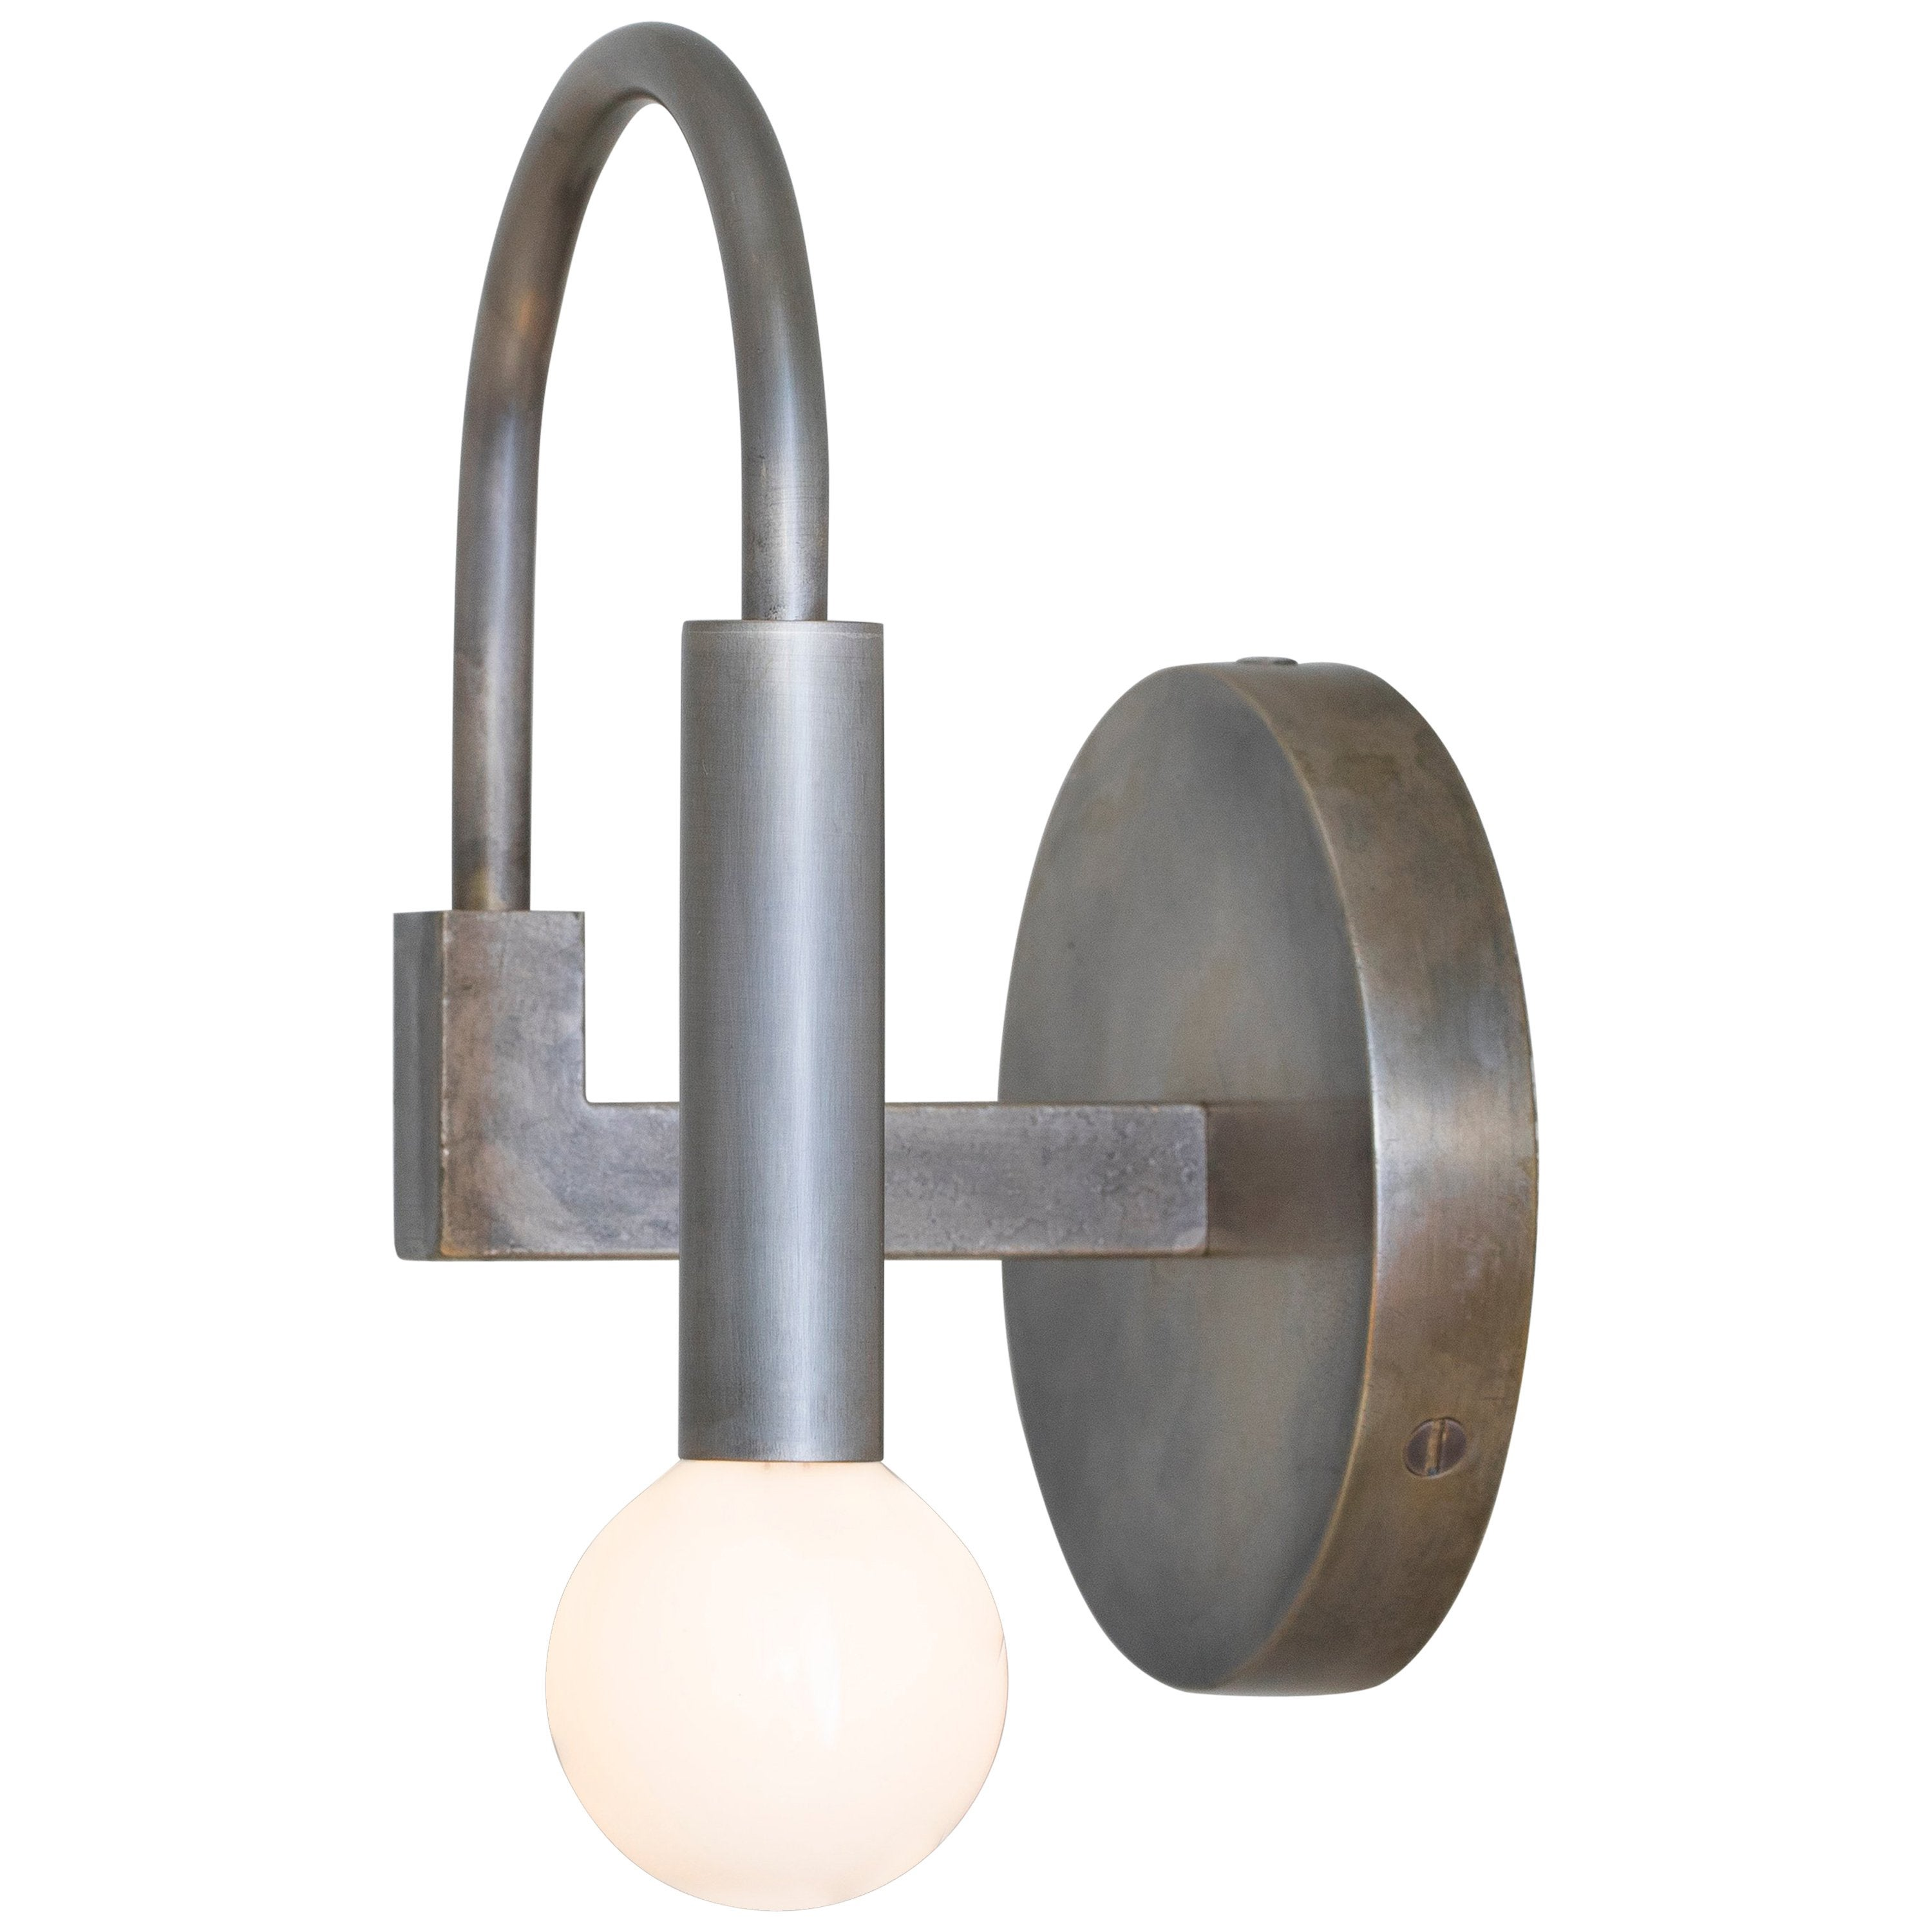 Arch a contemporary wall sconce in vintage silver available ada compliant